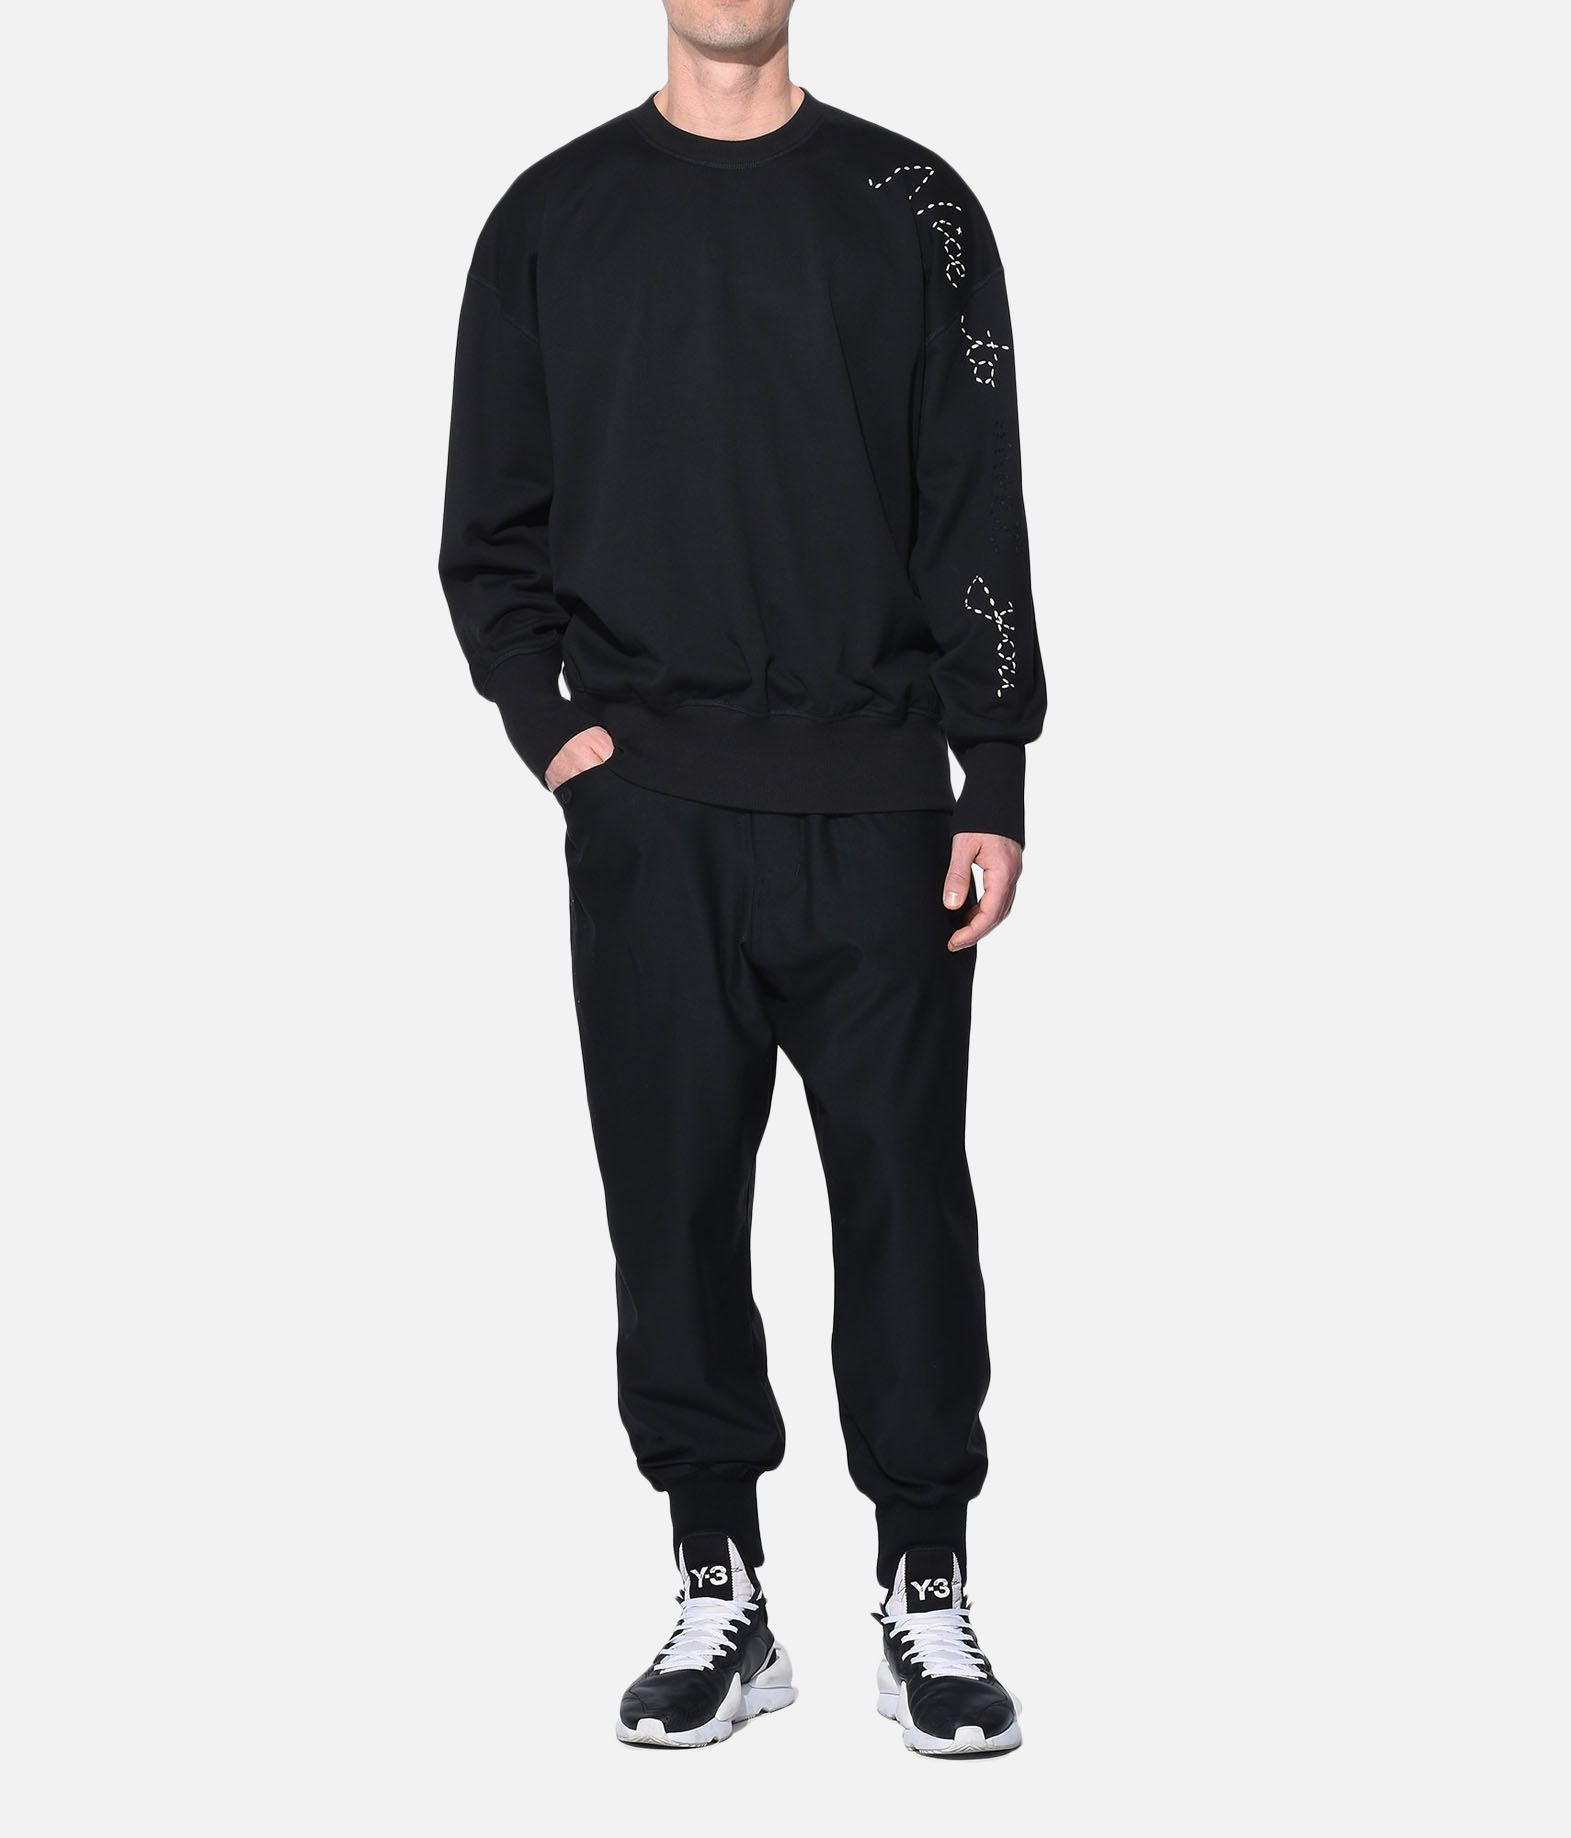 Y-3 Y-3 Sashiko Slogan Sweater スウェット メンズ a